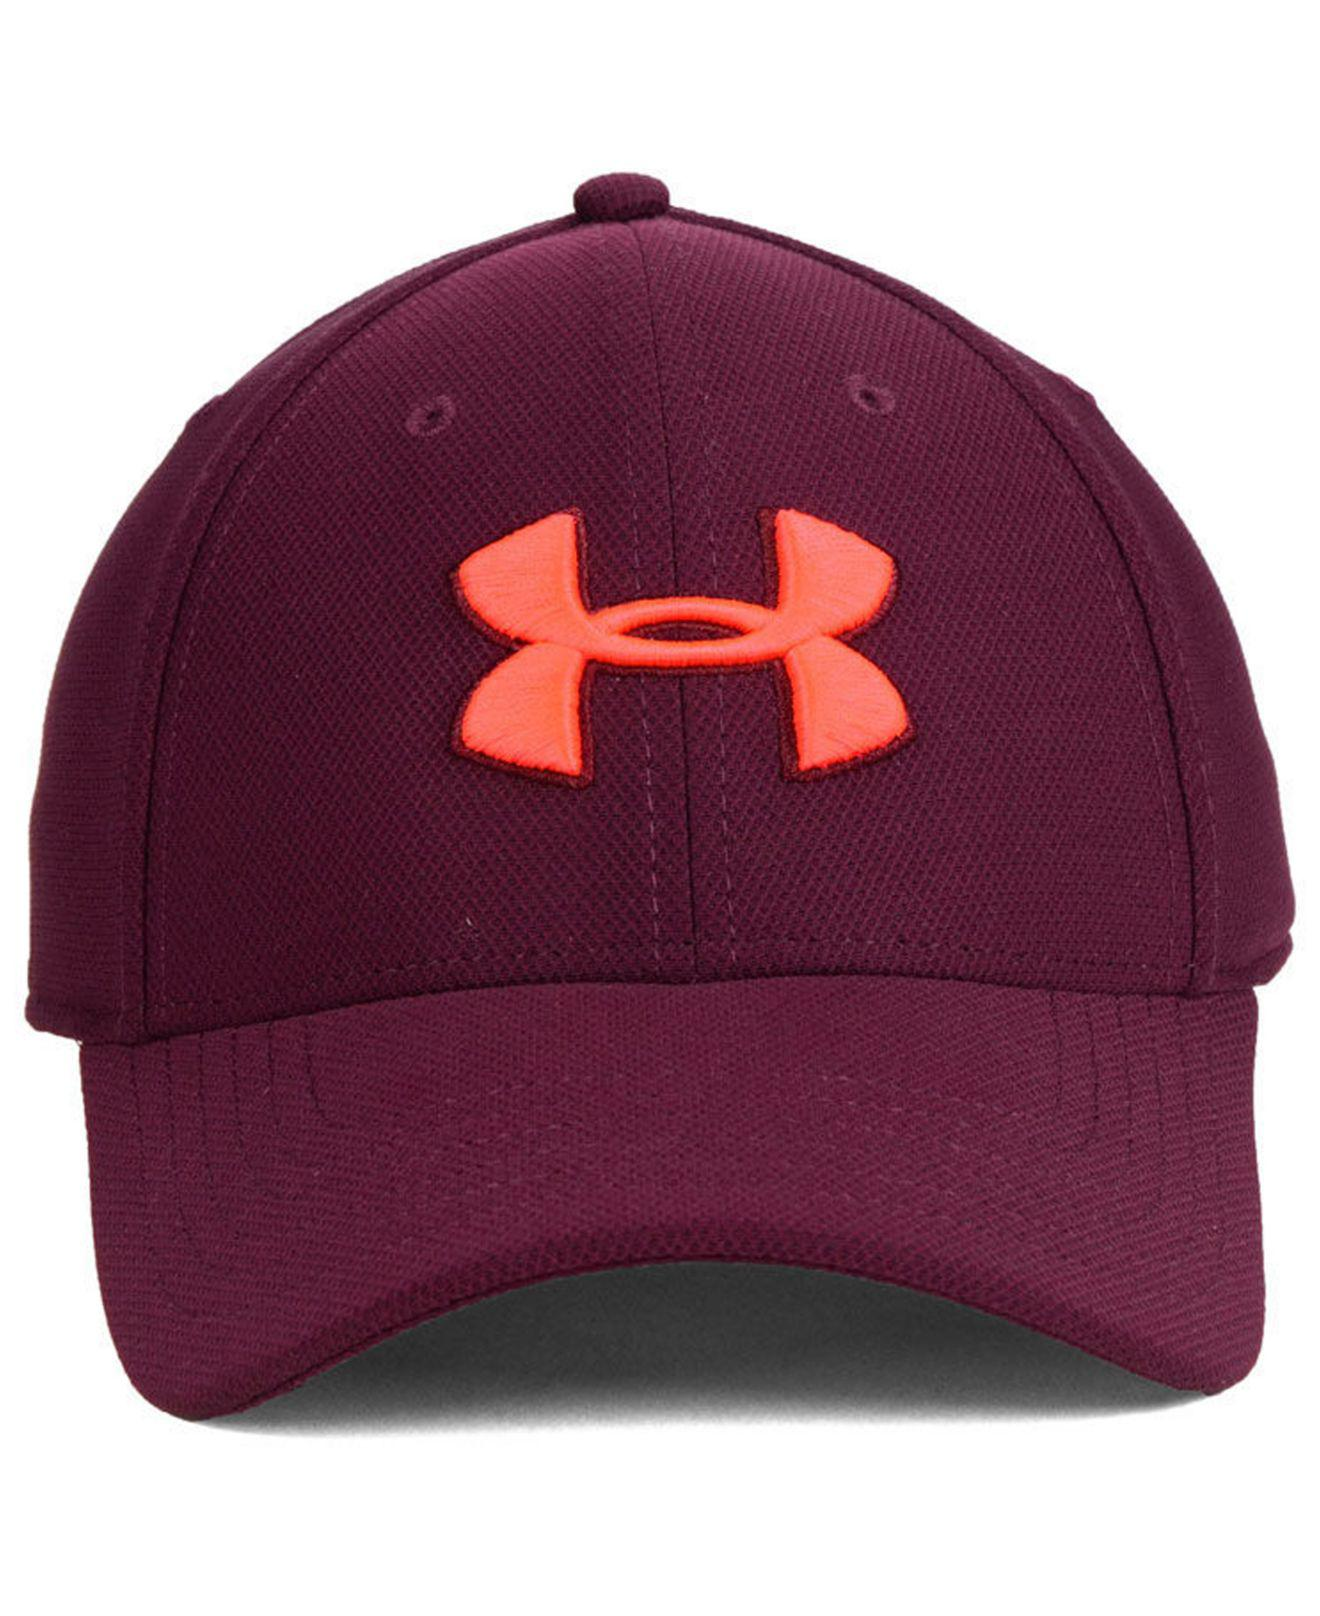 ea626e4f612 Lyst - Under Armour Blitzing 3.0 Stretch Fitted Cap in Red for Men